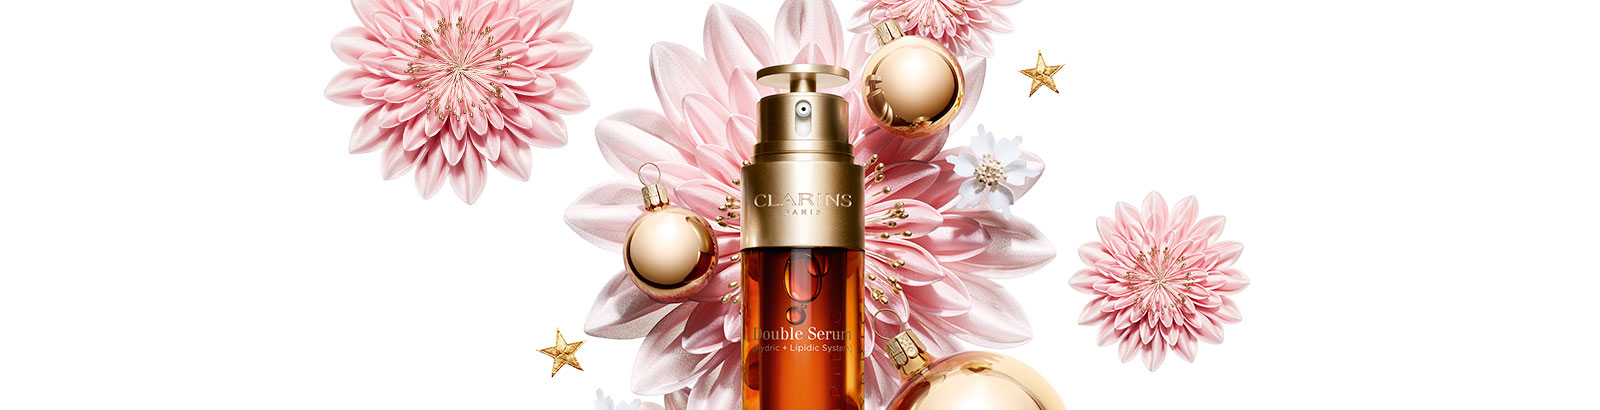 One Drop. Double the Power. Holiday glow guaranteed.